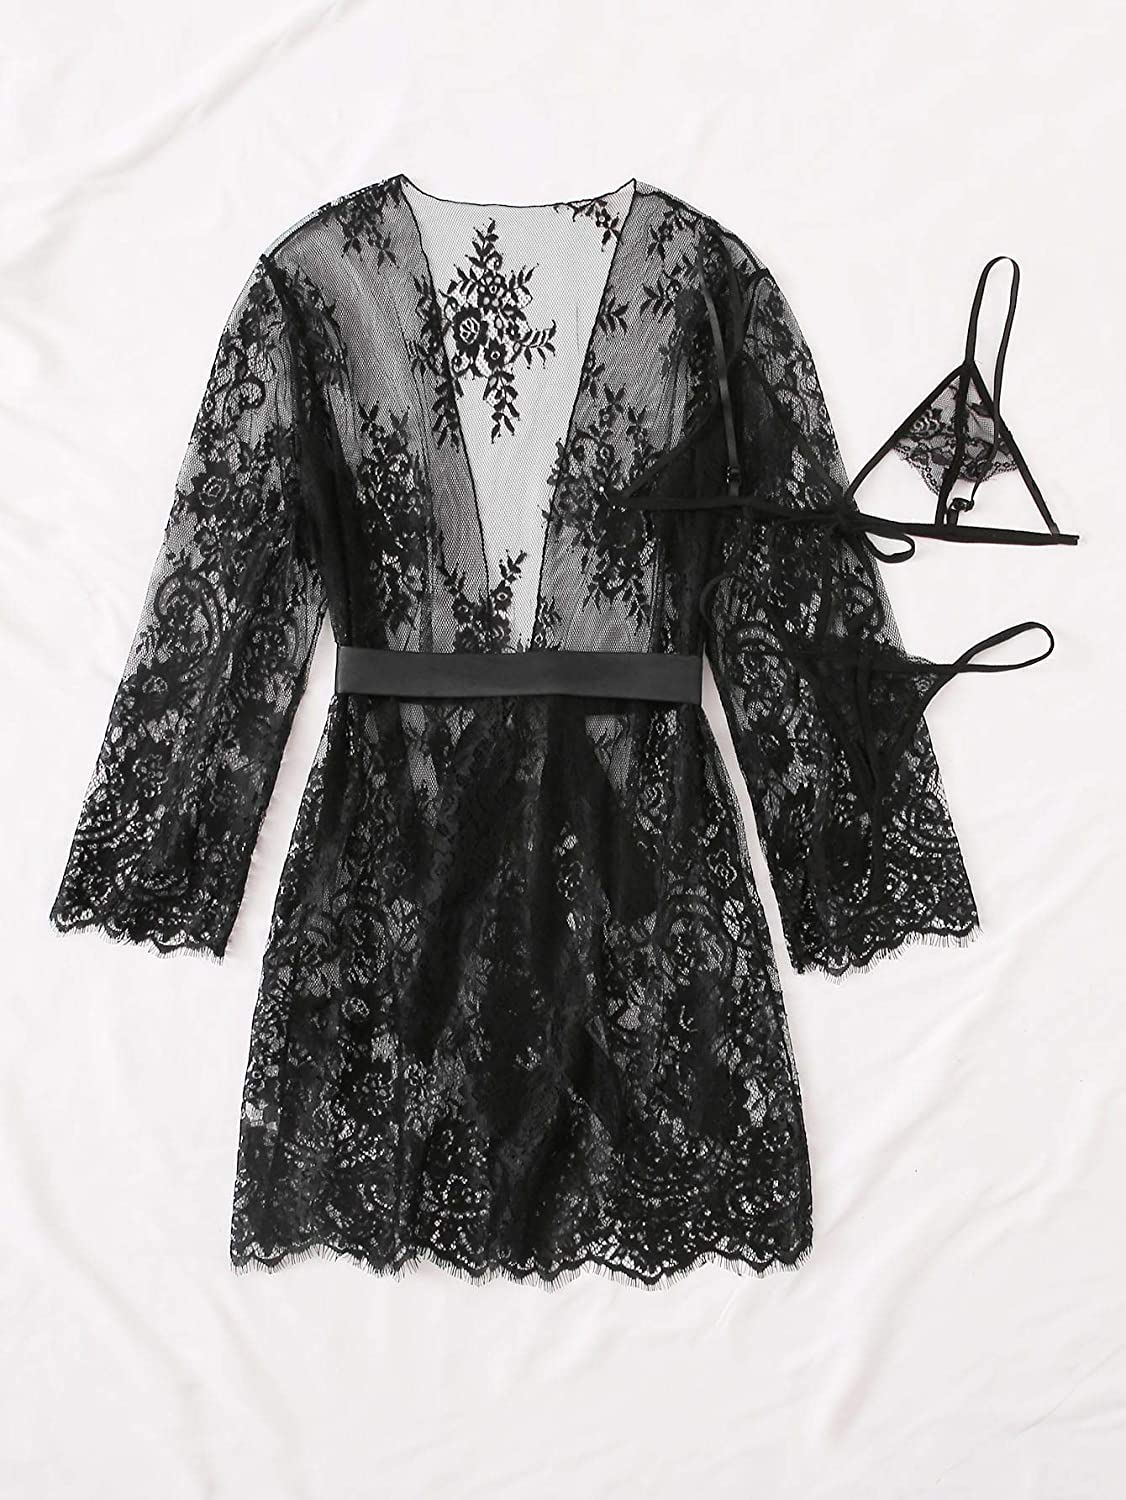 SOLY HUX Womens Plus Size 3 Piece Lace Bra and Panty Lingerie Set with Belted Robe